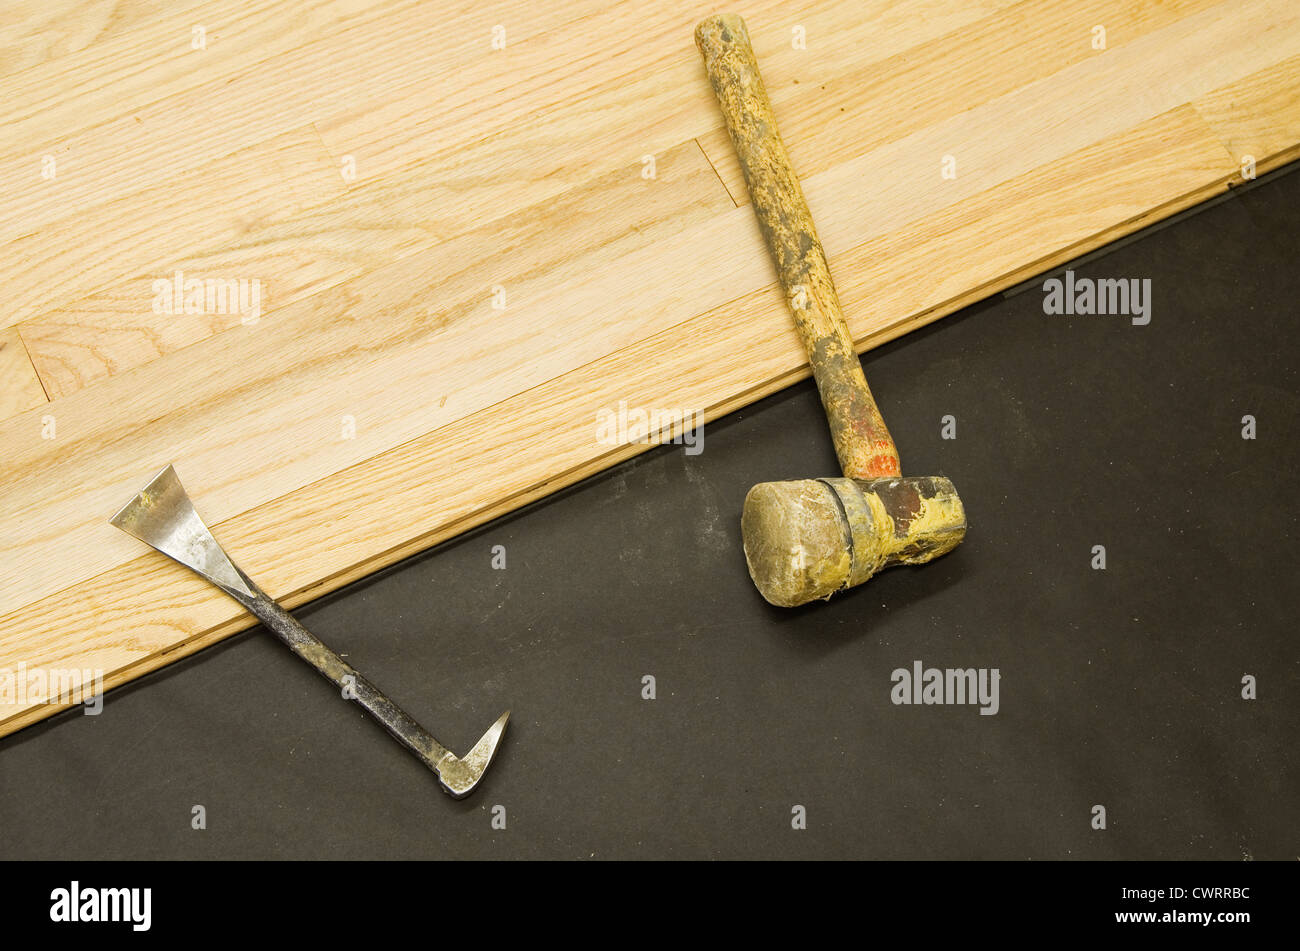 installation of hardwood flooring with prybar and mallet tools - Stock Image